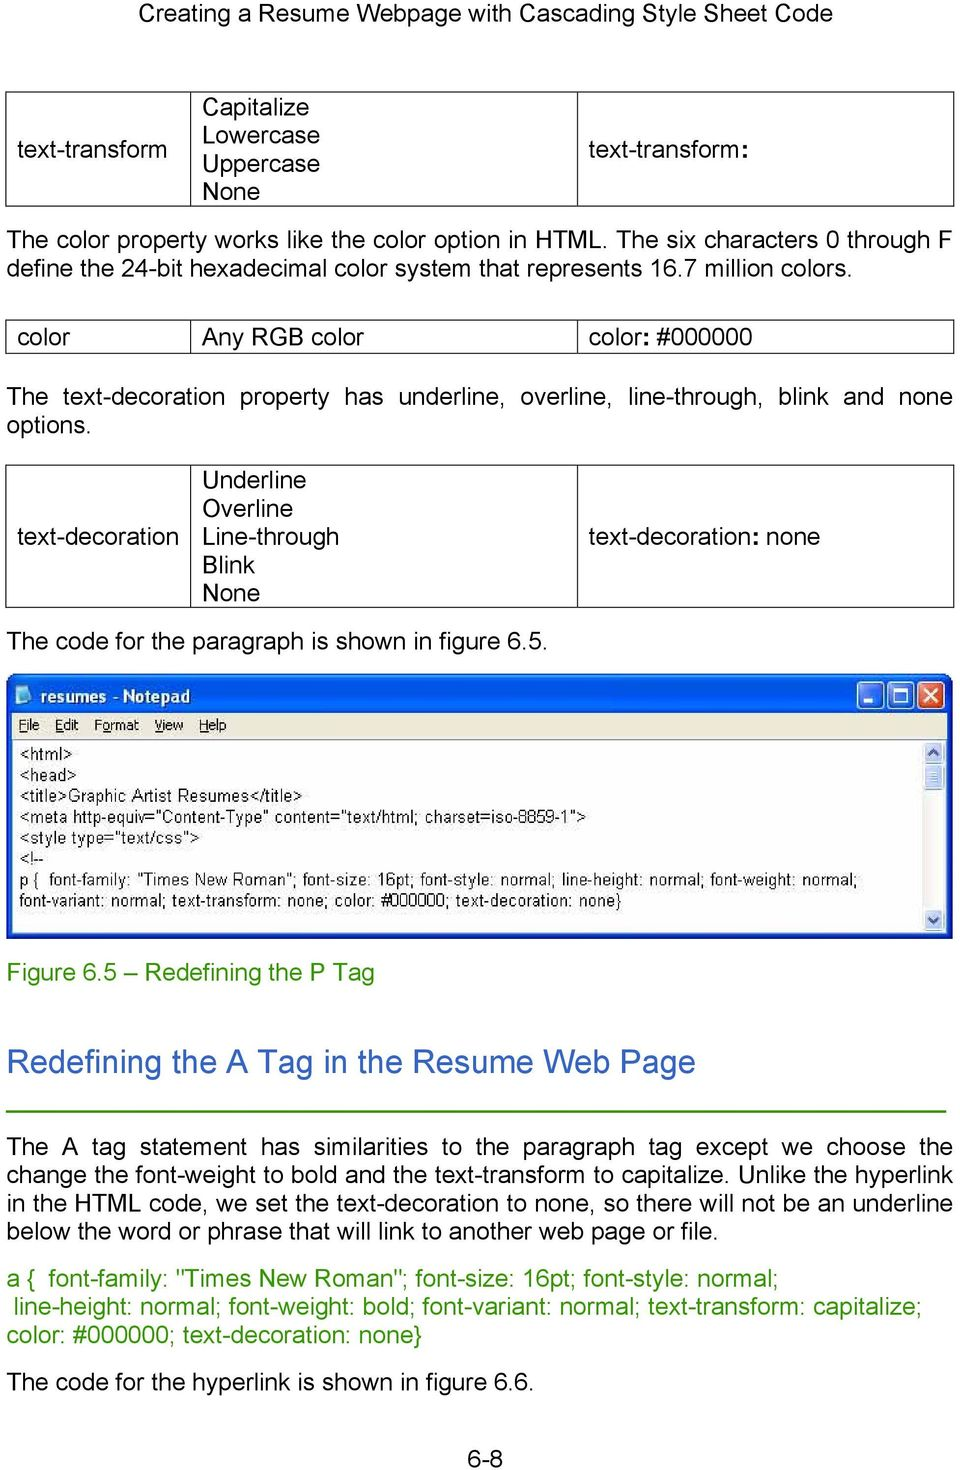 Creating A Resume Webpage With Pdf